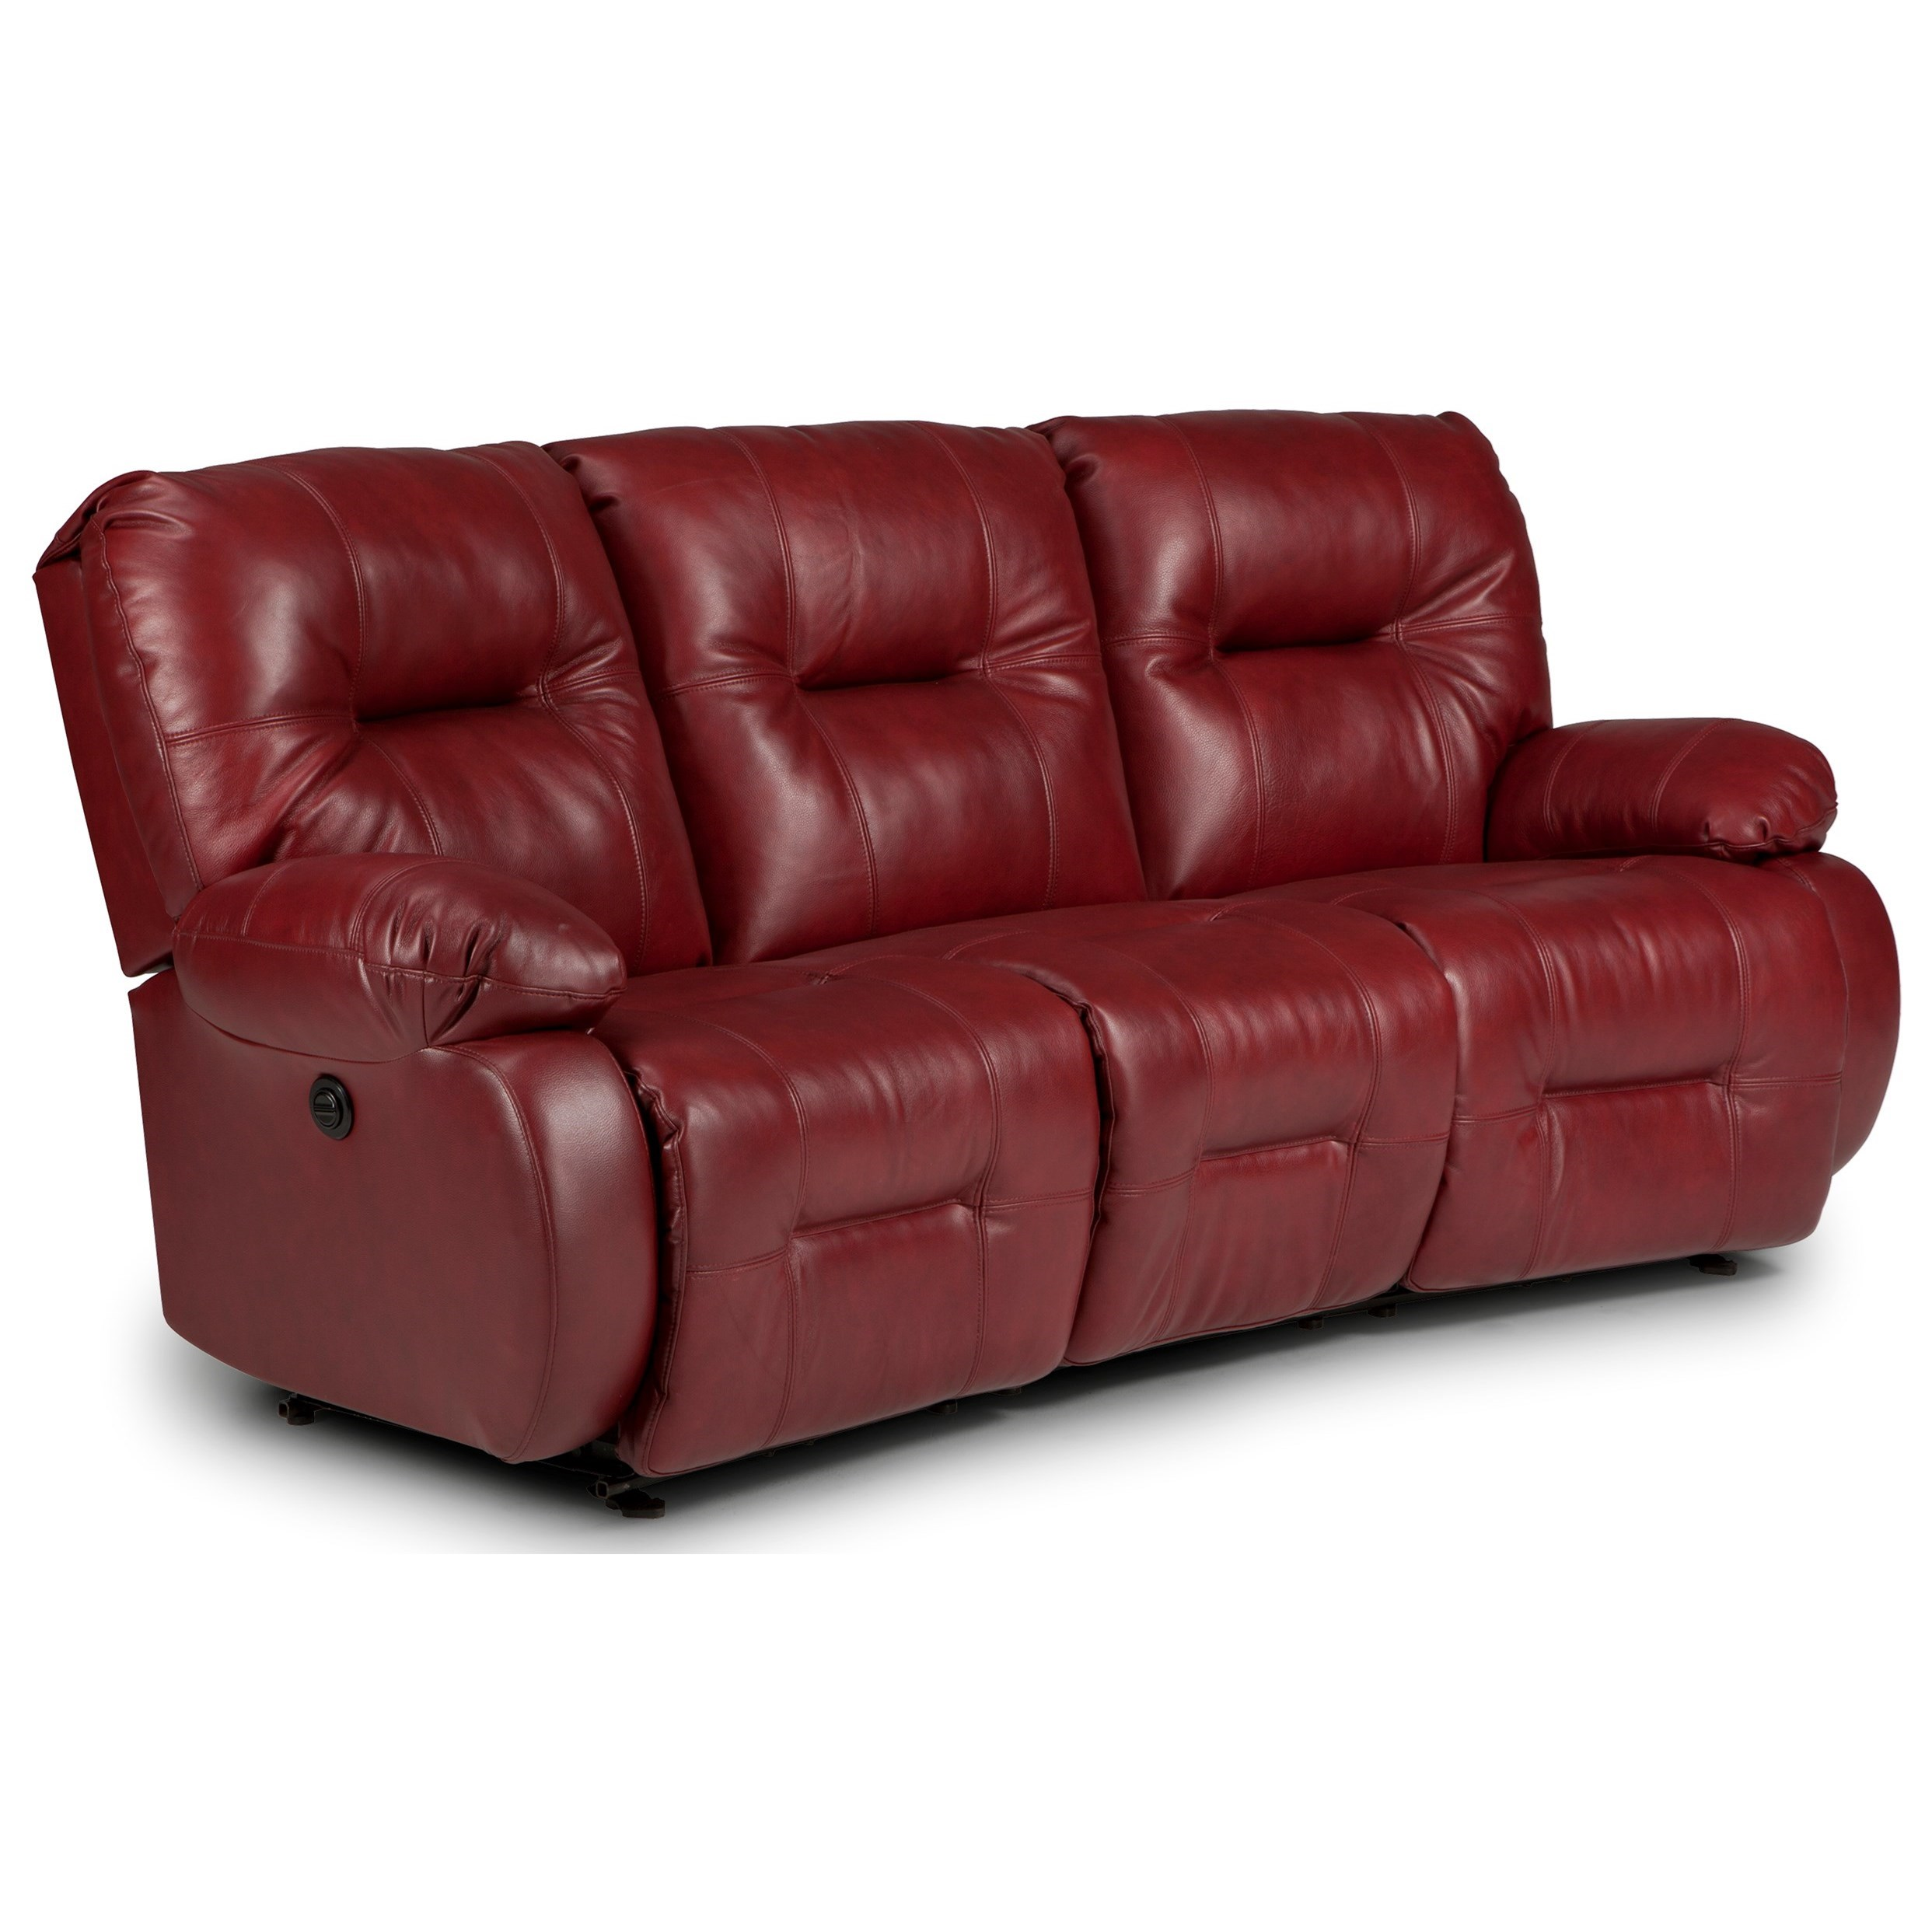 Brinley 2 Power Reclining Sofa by Best Home Furnishings at Best Home Furnishings